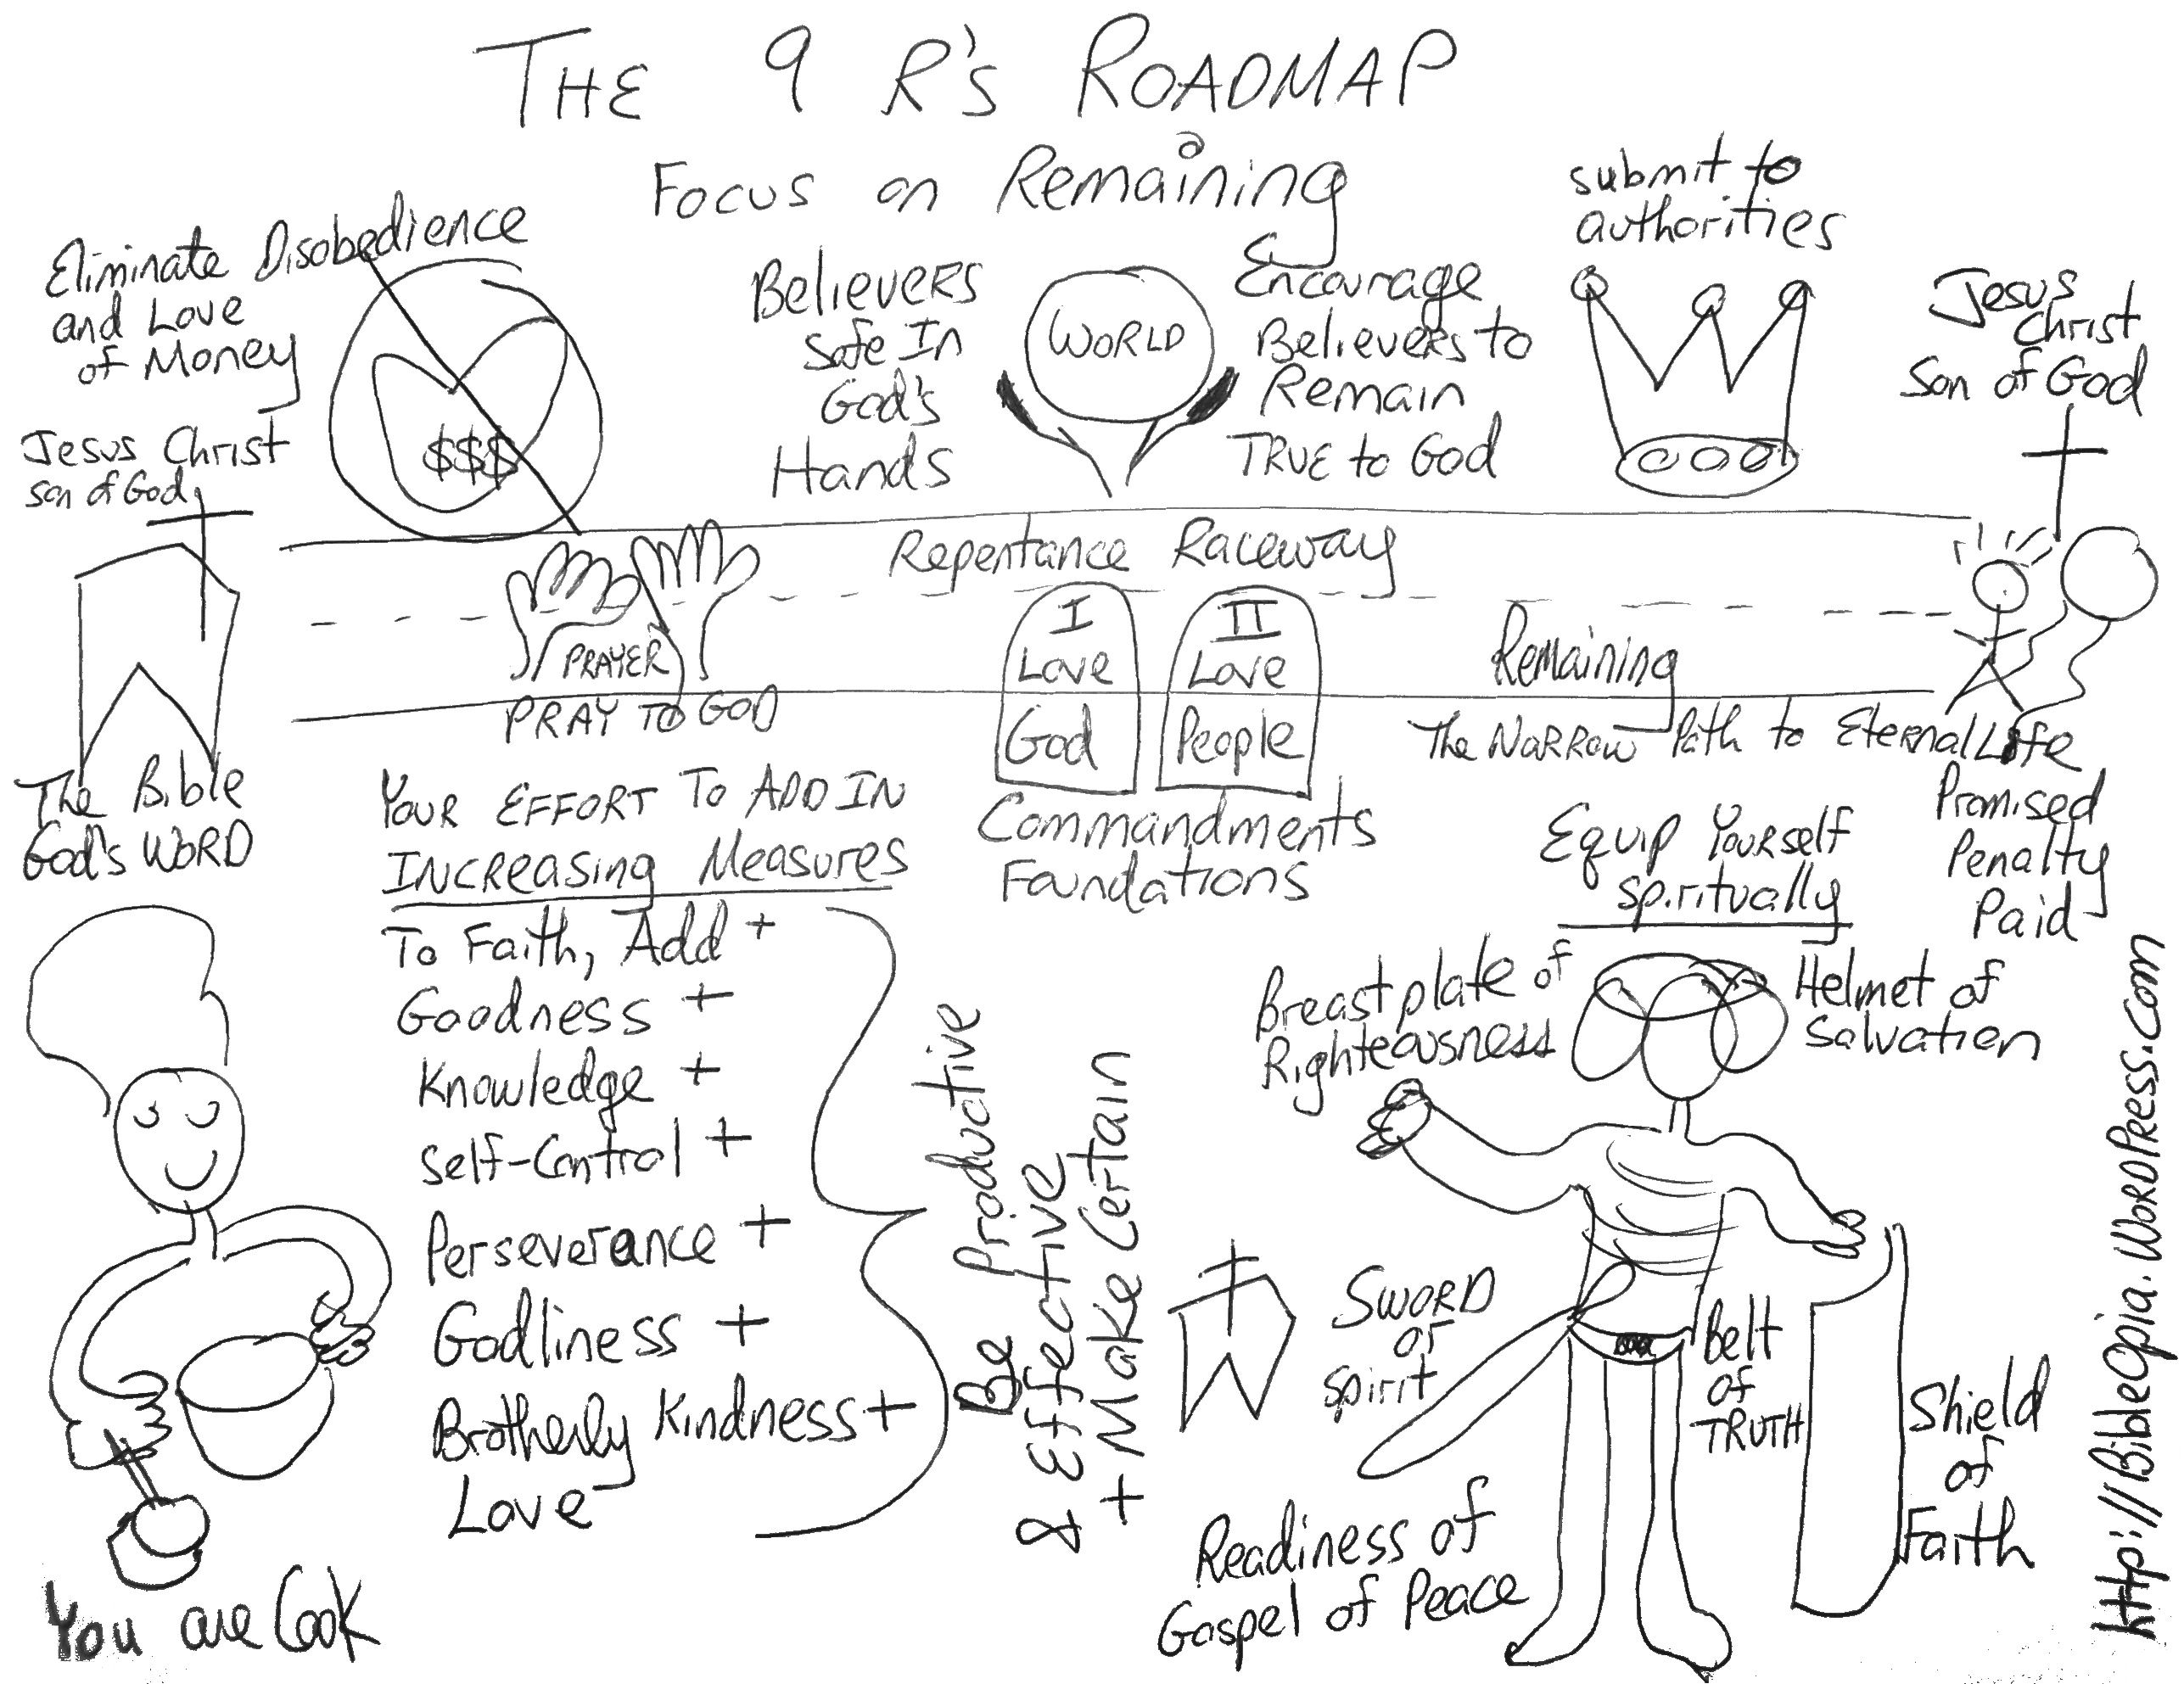 2574x1985 Reapers Roadmap Focus On Remaining In Righteousness (The 9 R'S